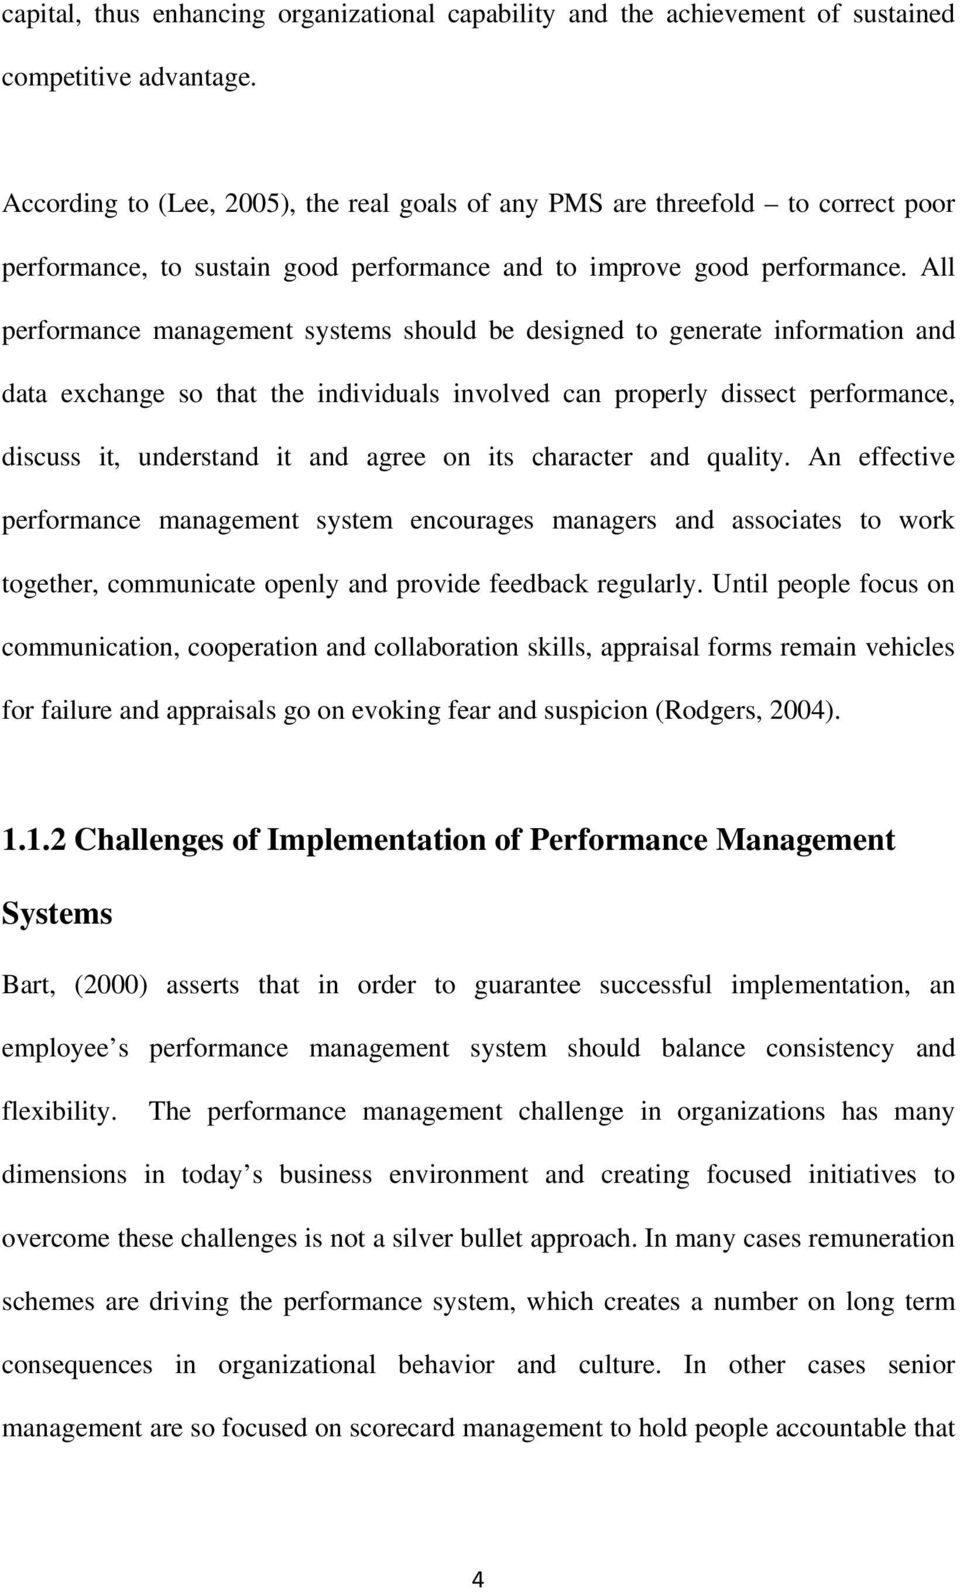 All performance management systems should be designed to generate information and data exchange so that the individuals involved can properly dissect performance, discuss it, understand it and agree